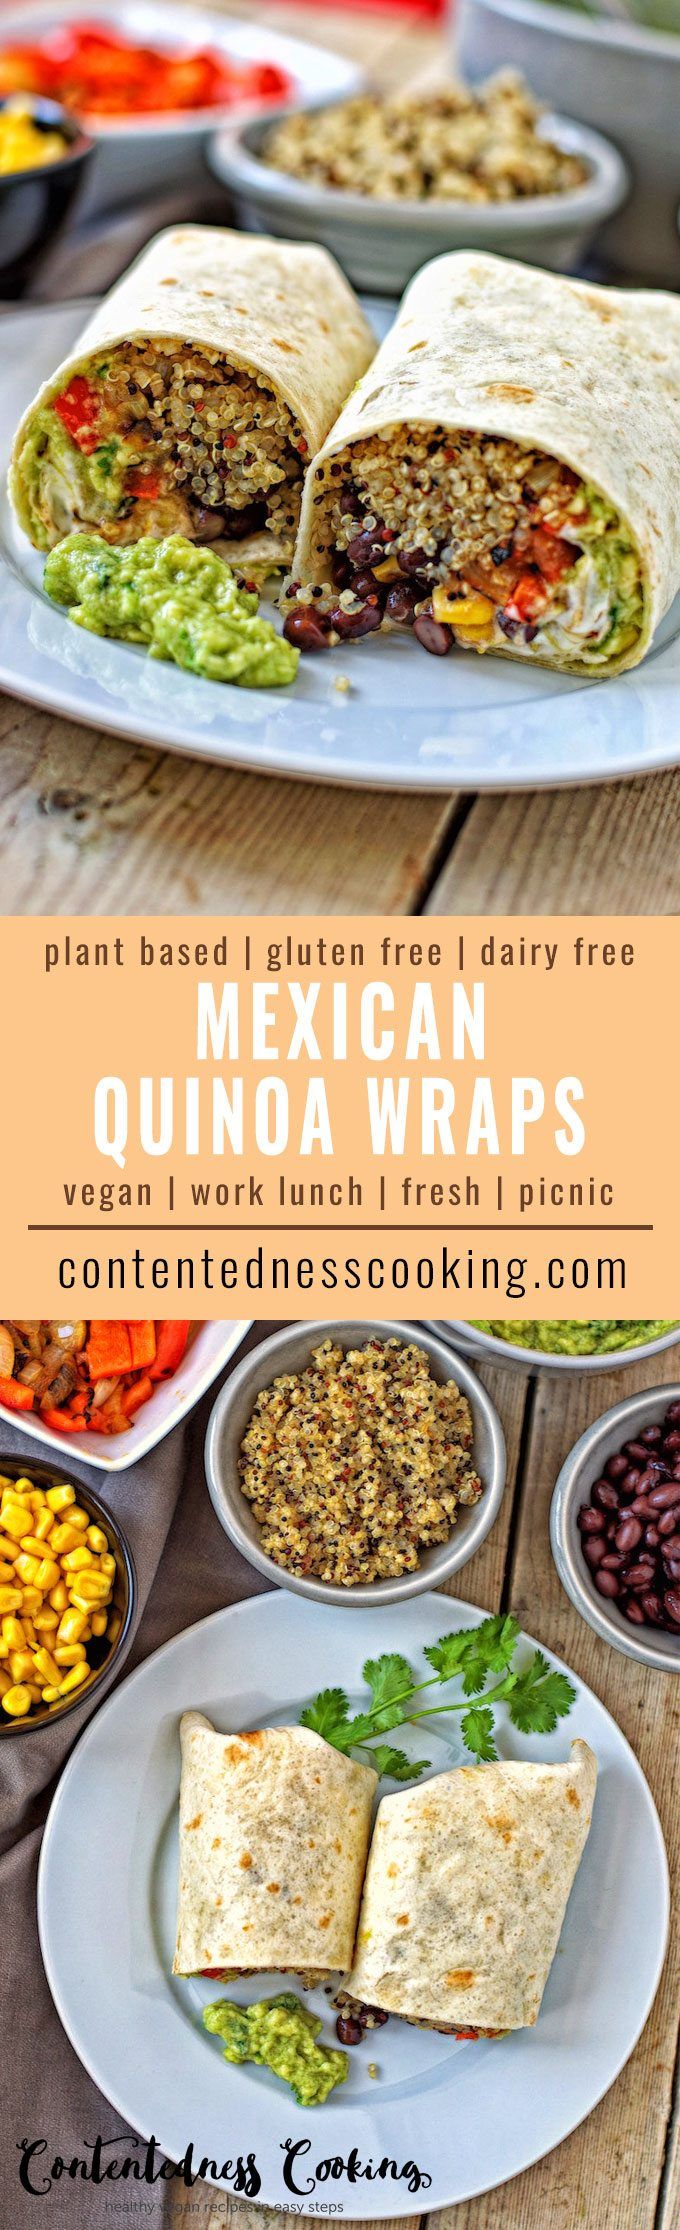 Collage of two pictures of Mexican Quinoa Wraps with recipe title text.